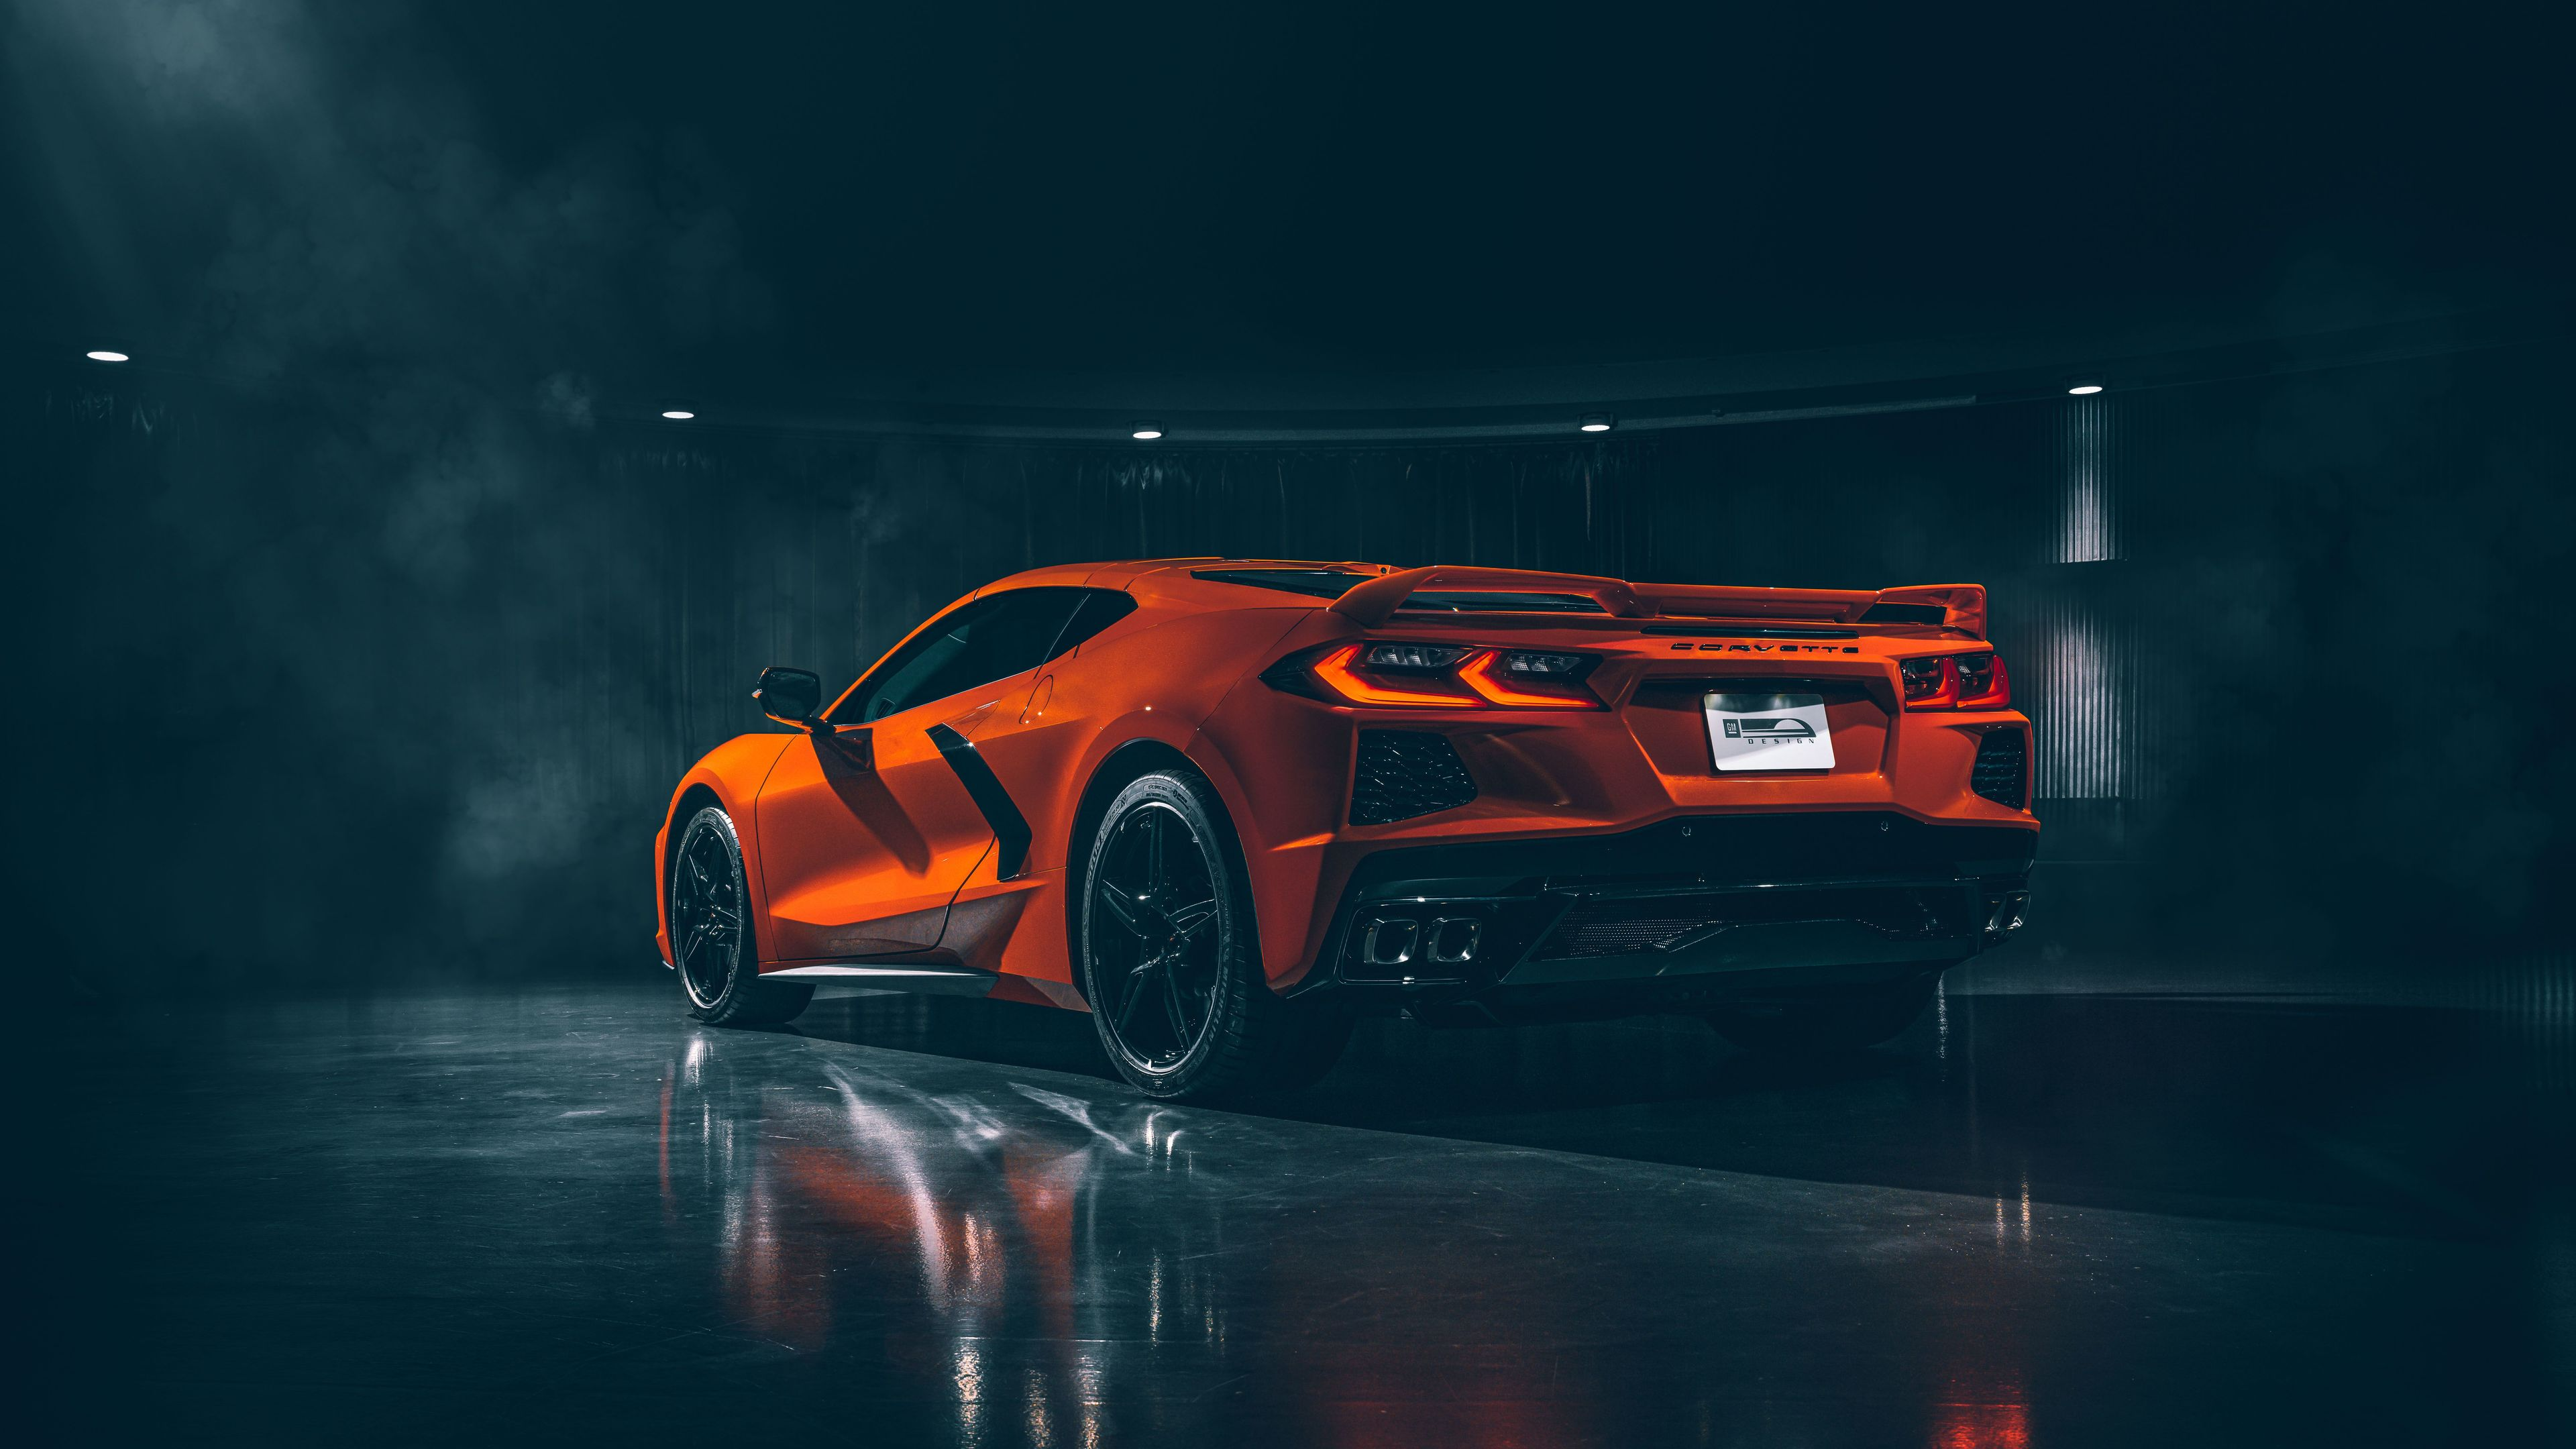 Wallpaper 4k 2020 Chevrolet Corvette Stingray C8 Rear 2020 Cars